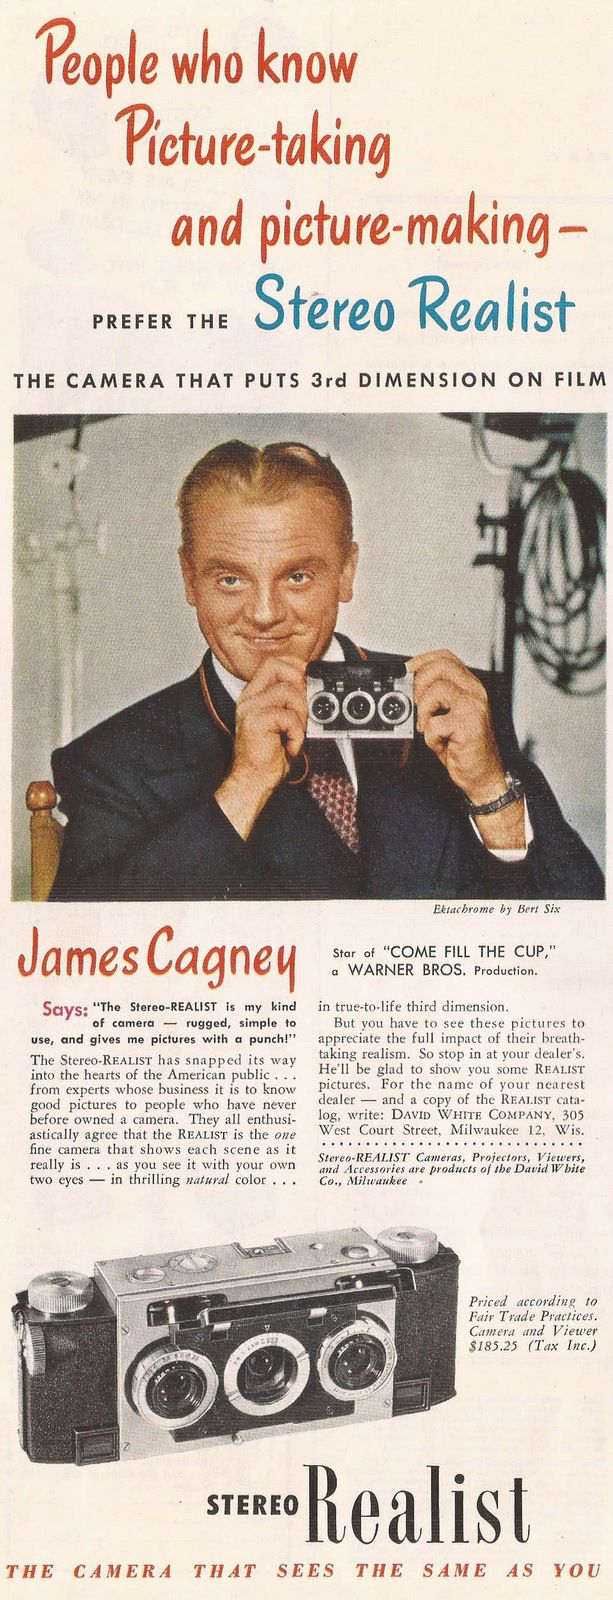 James Cagney in a Stereo Realist camera ad from Holiday magazine, November 1951